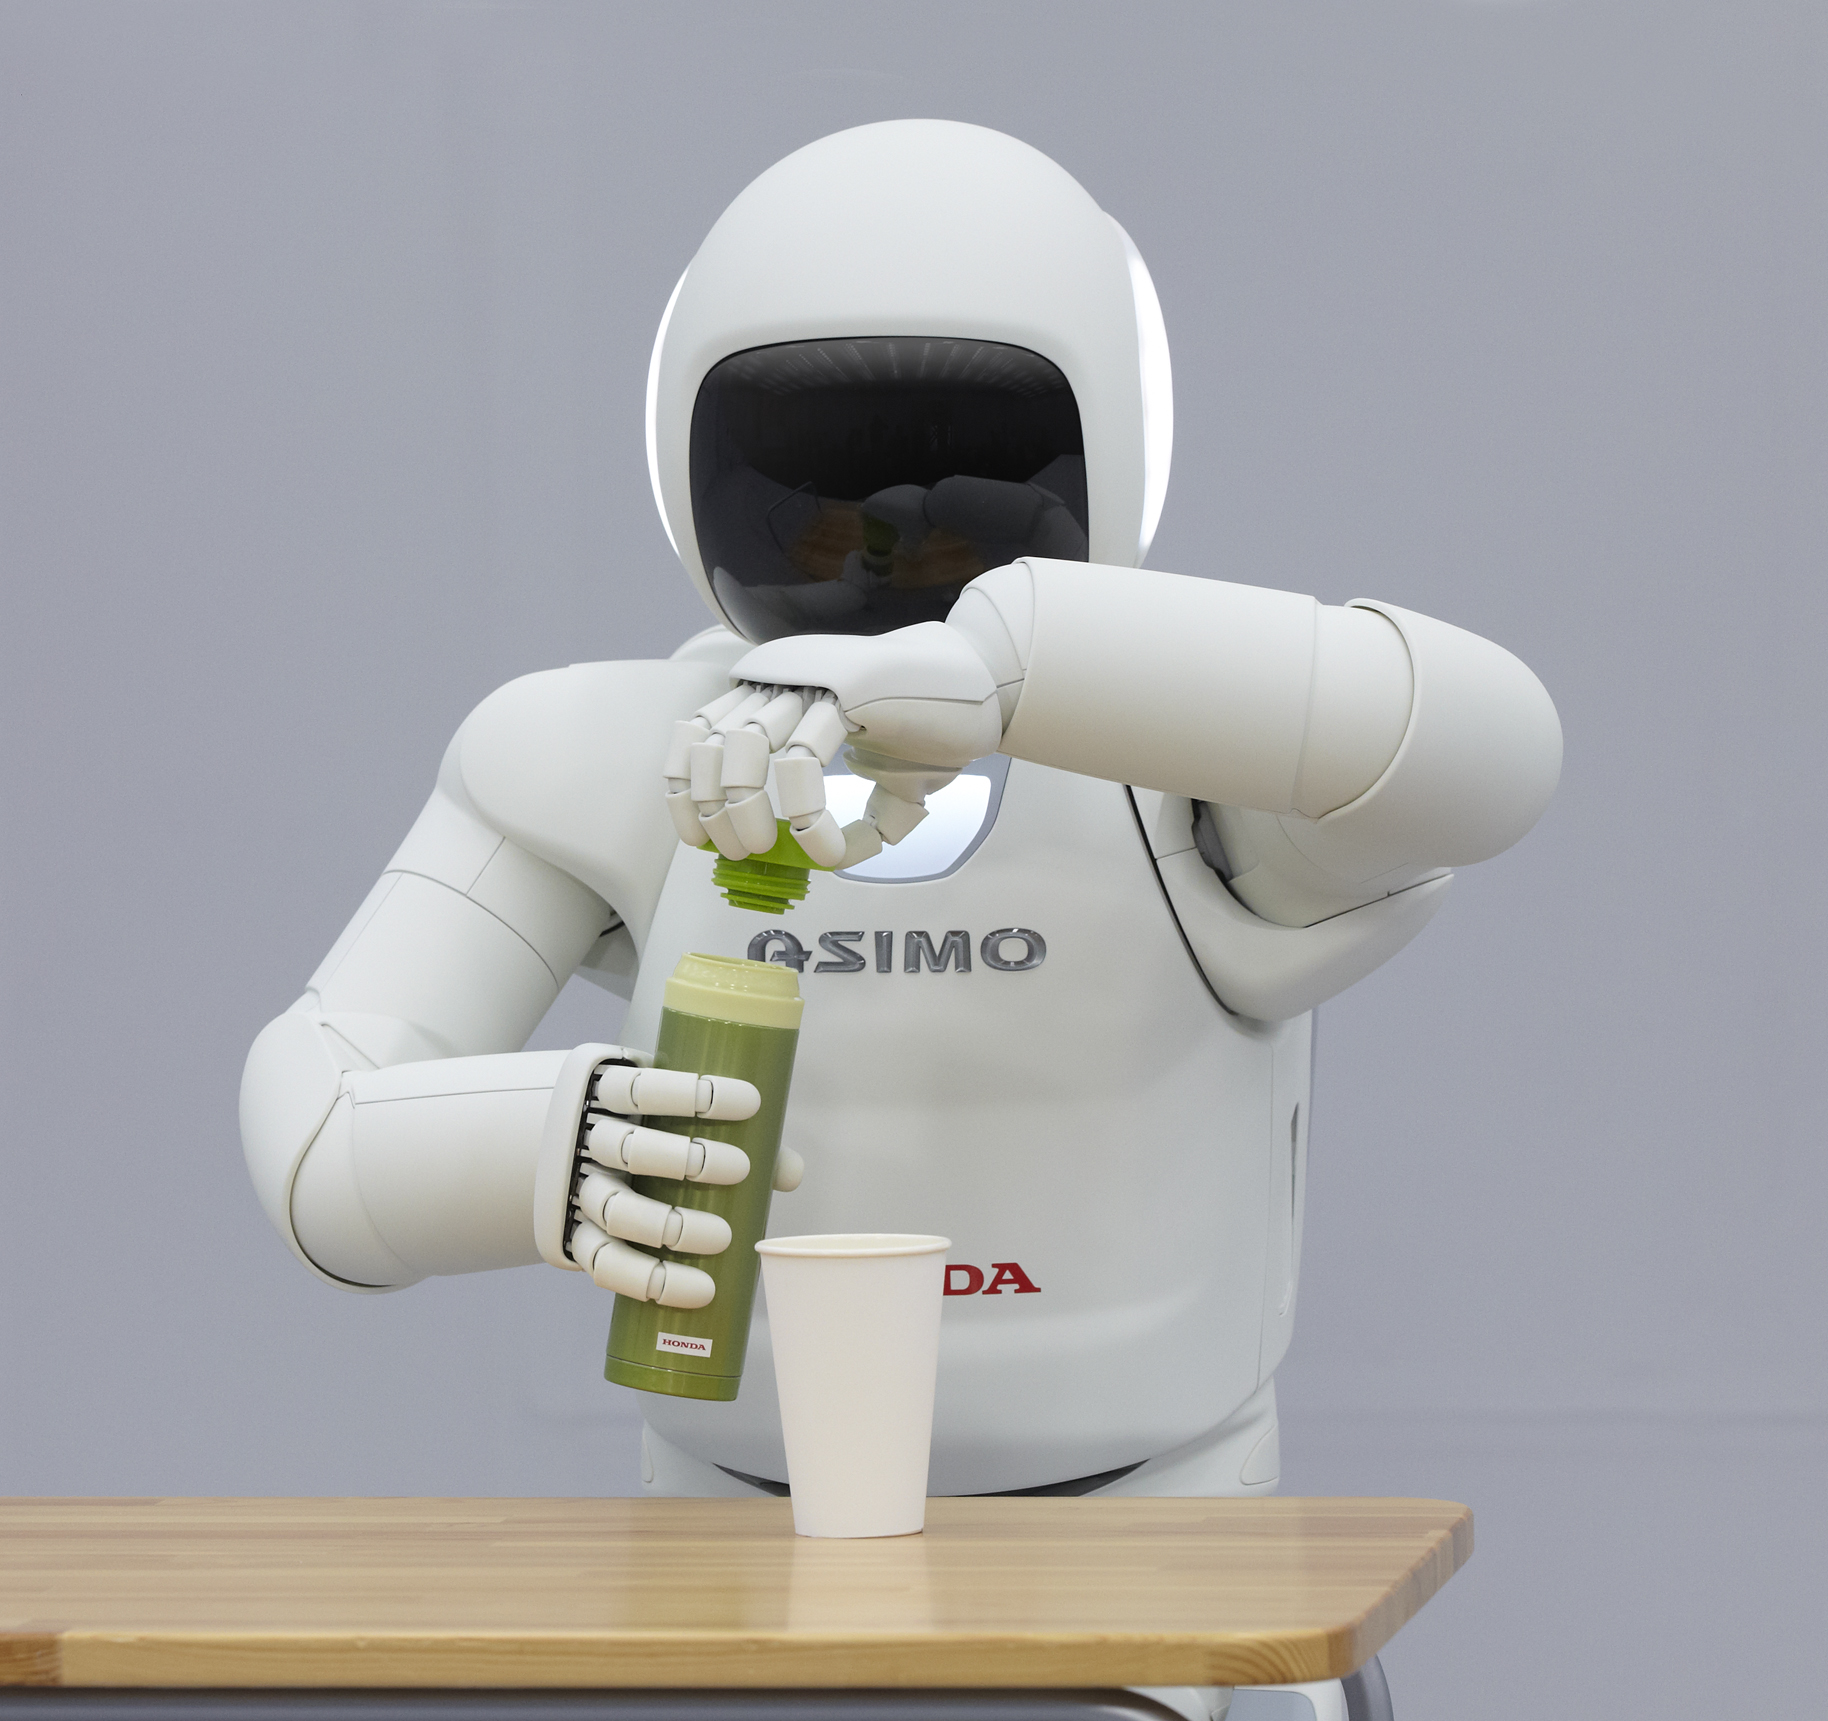 Photo Credit: Honda, Asimo robot